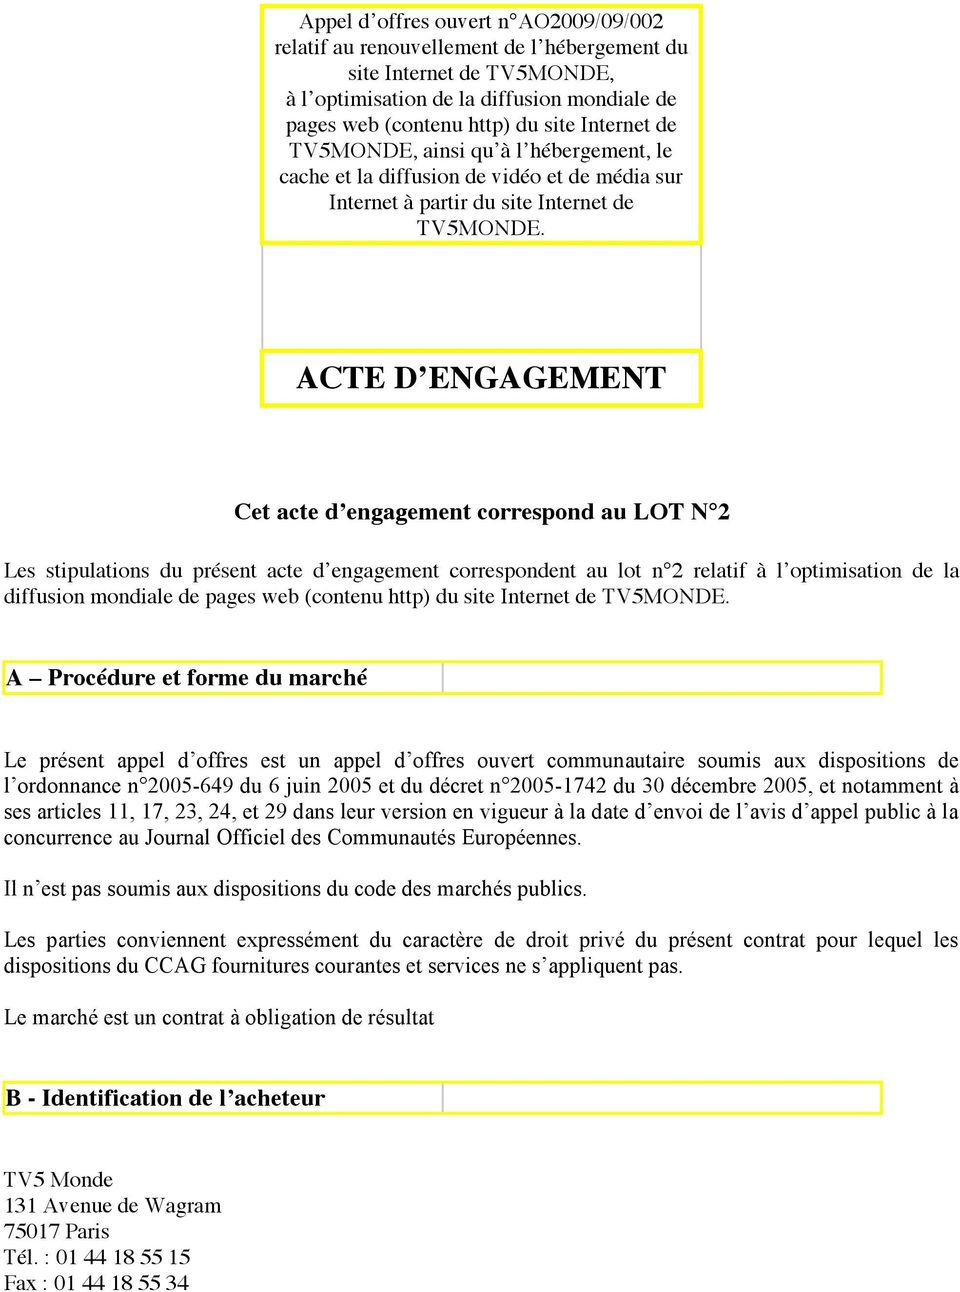 ACTE D ENGAGEMENT Cet acte d engagement correspond au LOT N 2 Les stipulations du présent acte d engagement correspondent au lot n 2 relatif à l optimisation de la diffusion mondiale de pages web